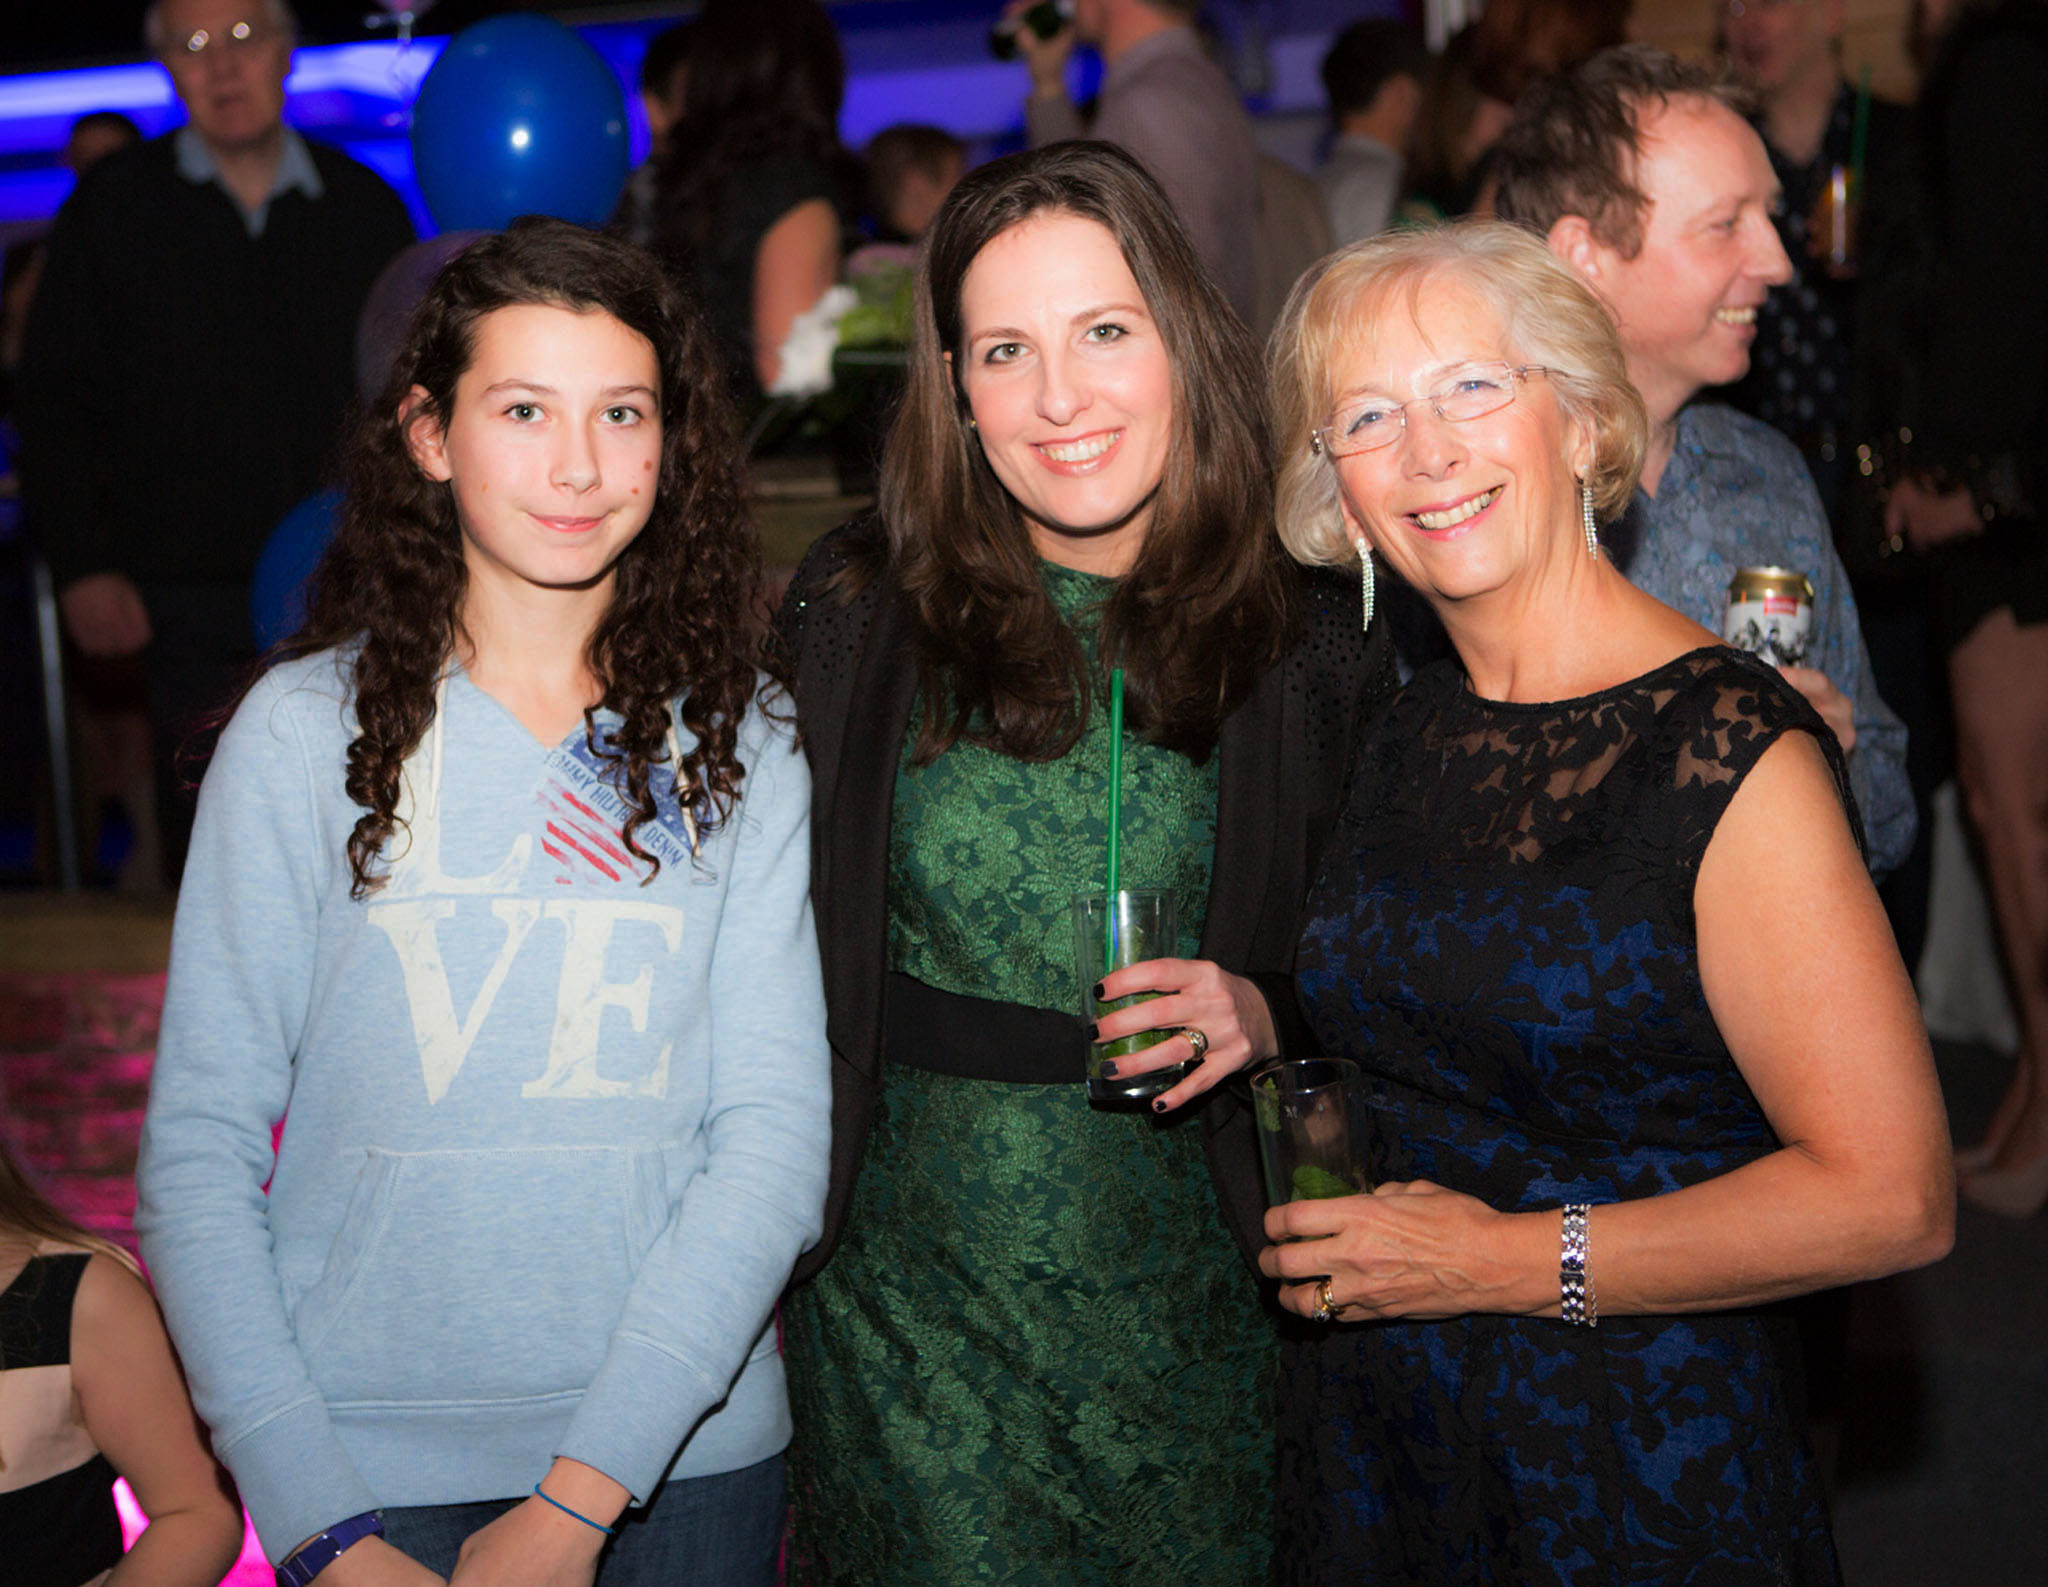 Photograph of guests celebrating at a 40th birthday party in Alderley Edge, Cheshire